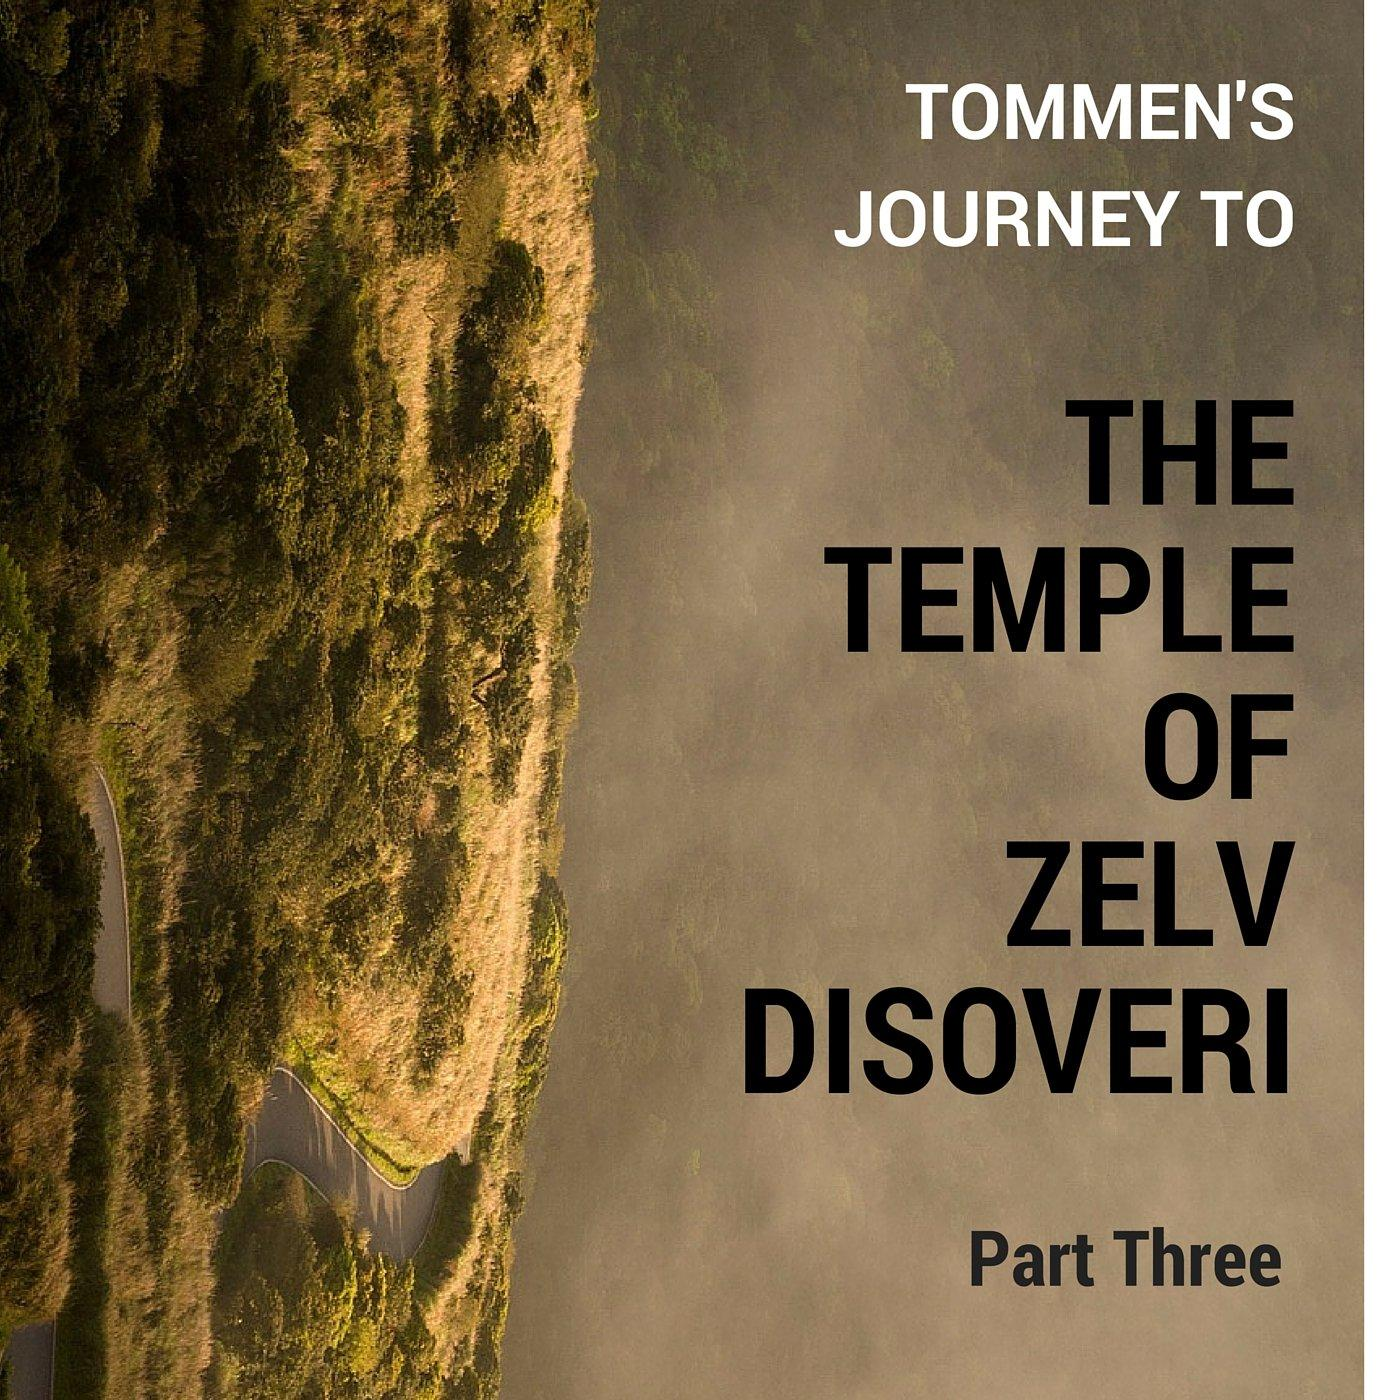 Tommen's Journey to Zelv Discoveri Part Three